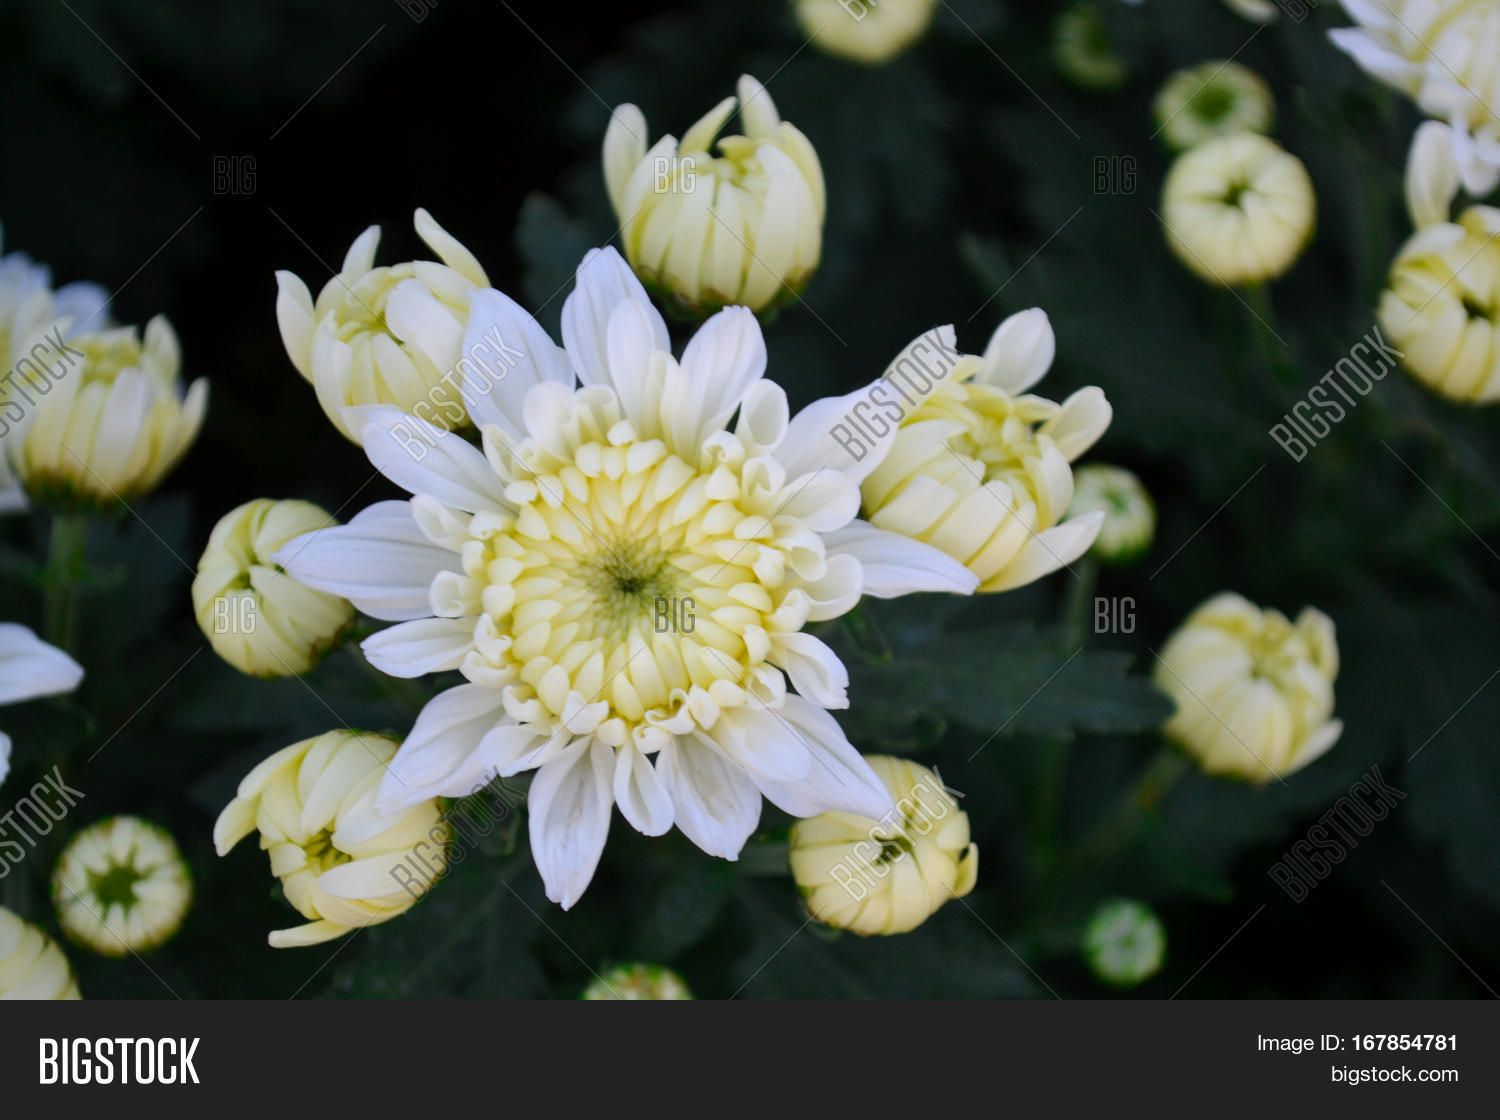 These white flowers image photo free trial bigstock these are white flowers and has yellow pollen called chrysanthemum or florists mun or mums flowers mightylinksfo